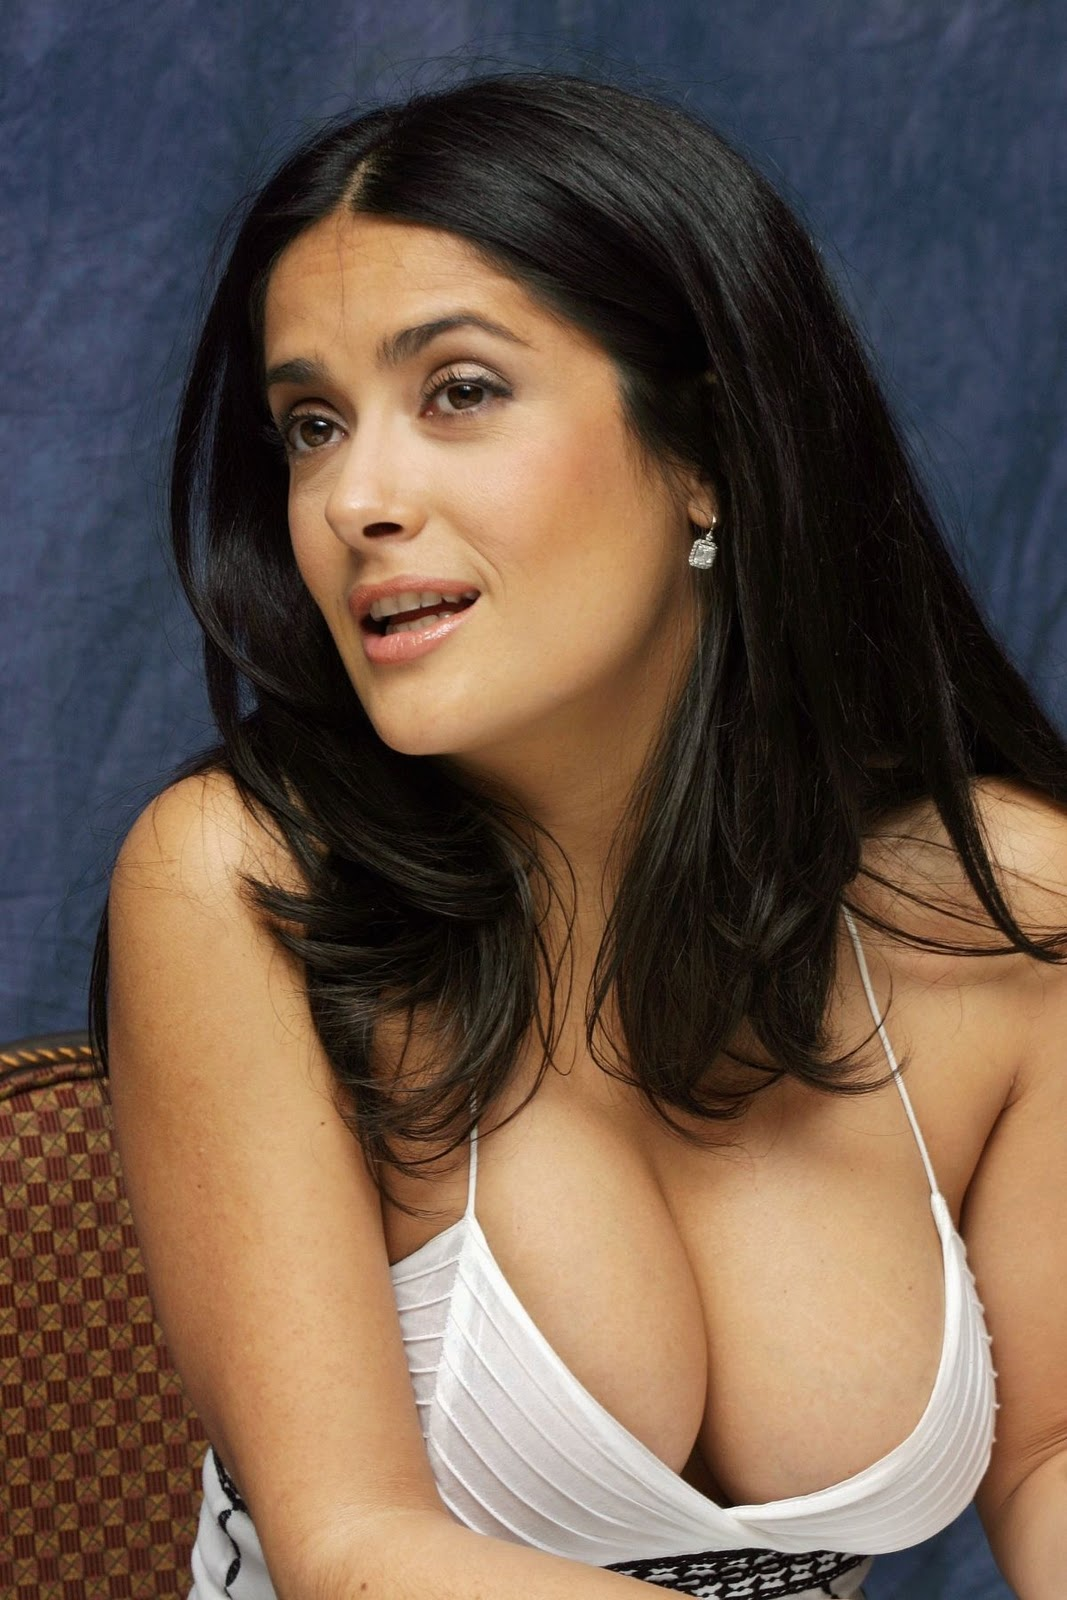 10 Most Beautiful Women Of World 2011 on oscar diaz salazar